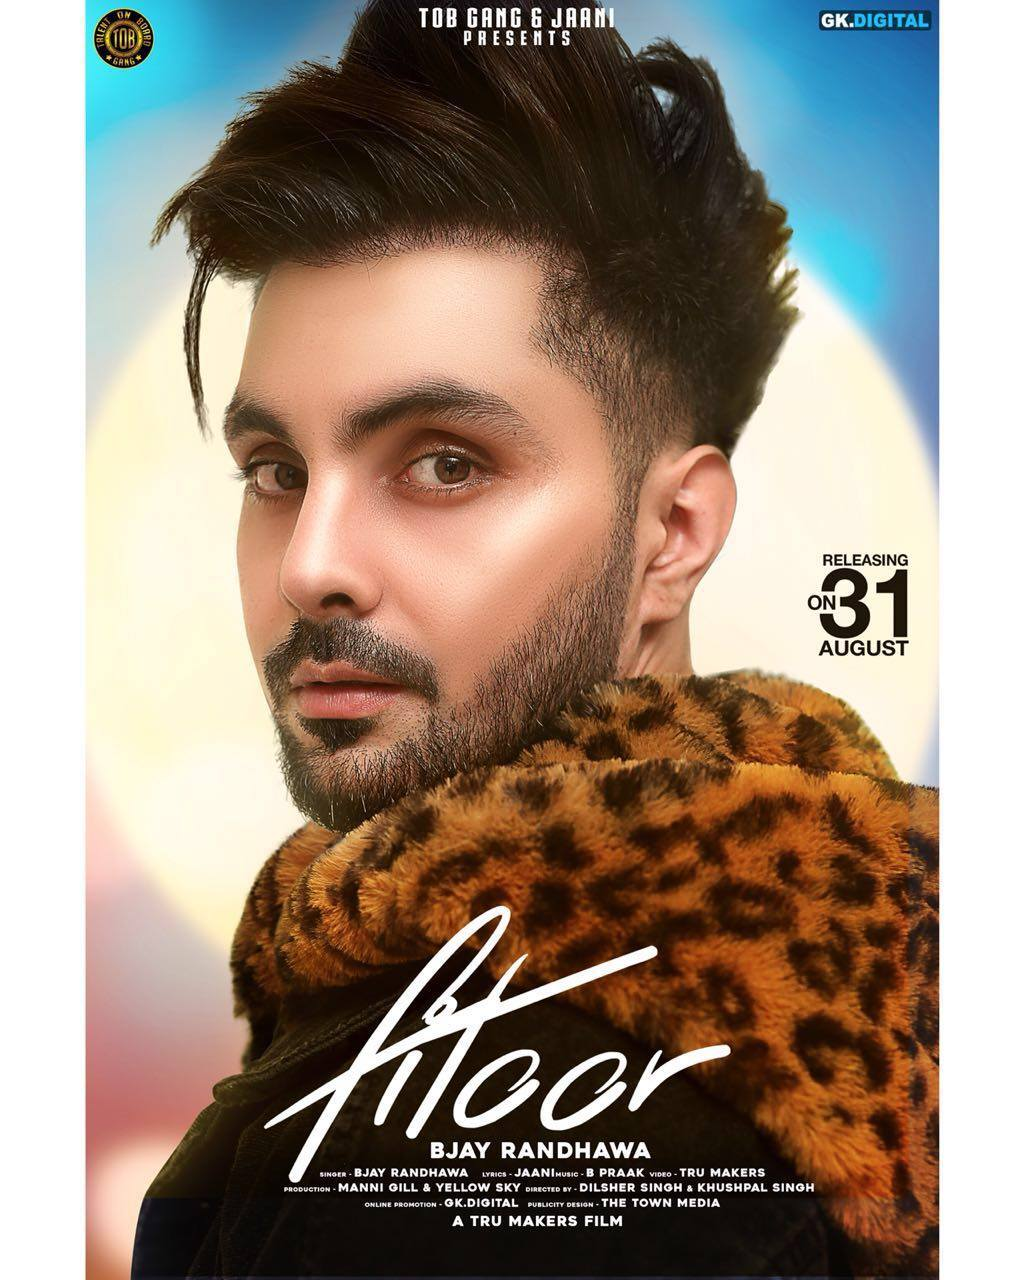 Fitoor Lyrics - B Jay Randhawa New Song 2018